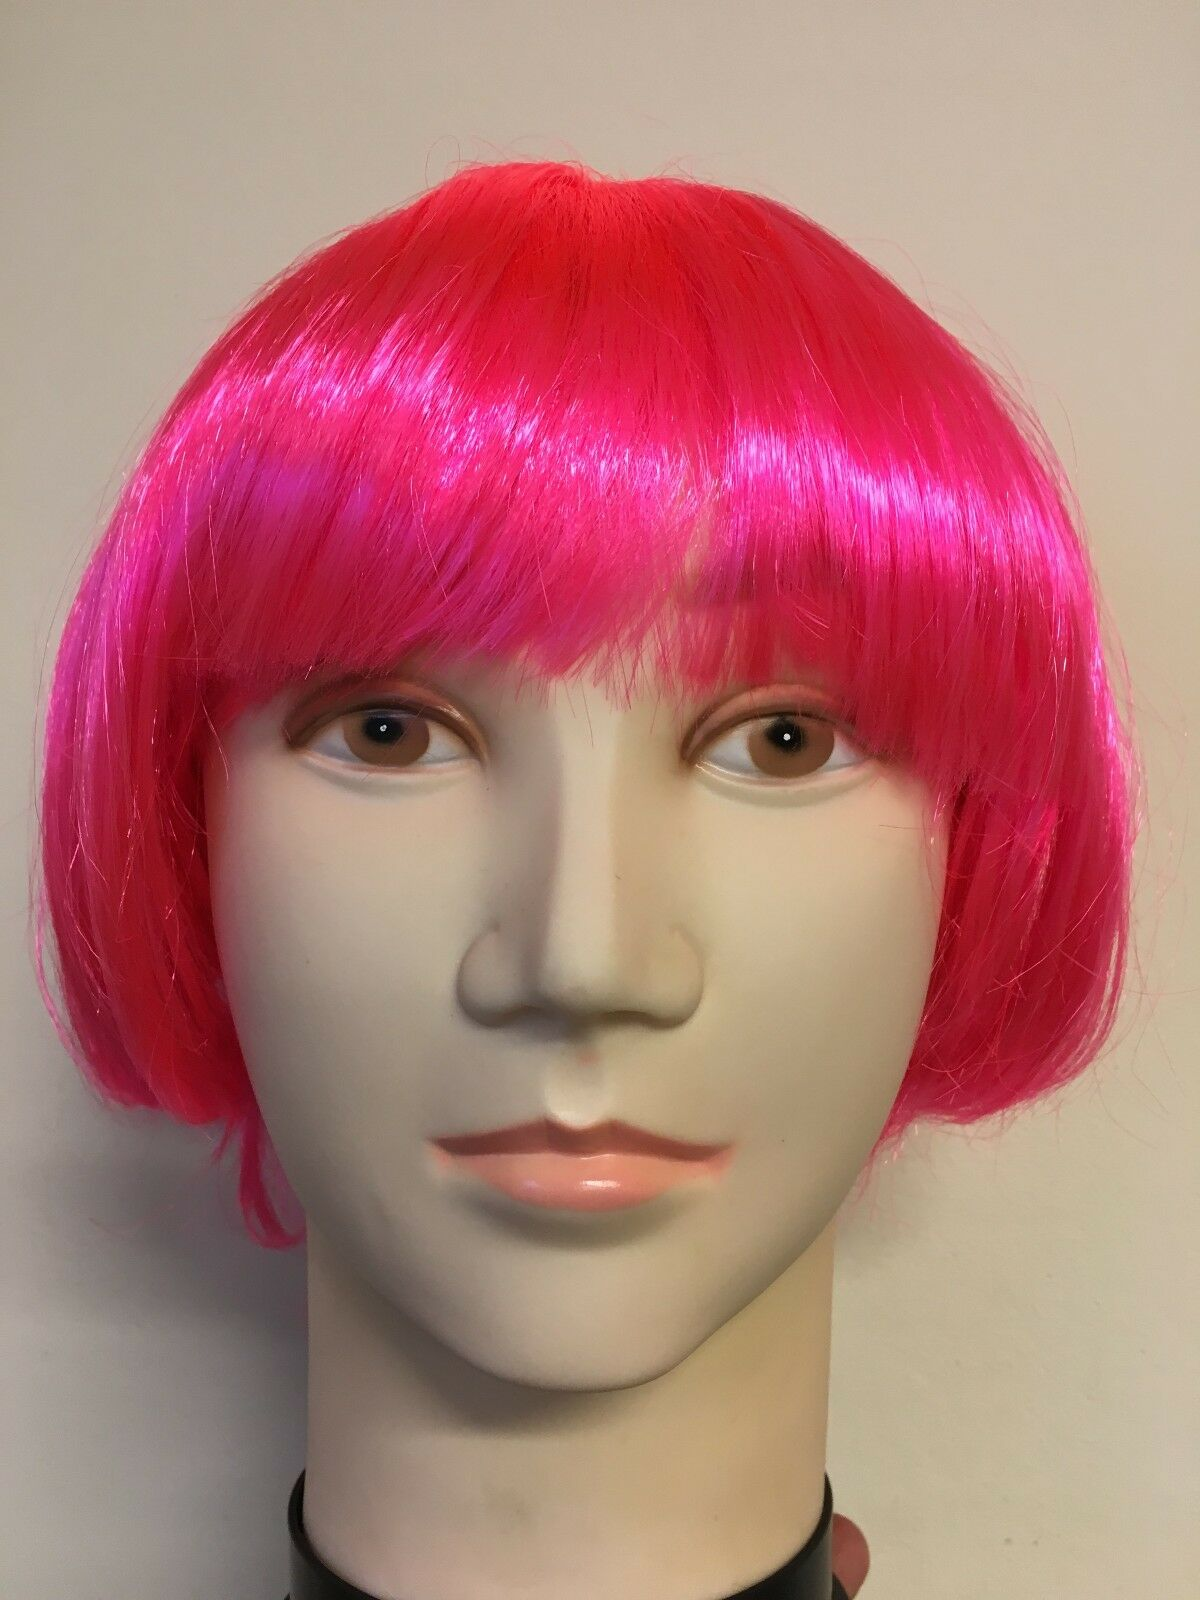 Details about WOMENS LADIES PINK BLOND SHORT BOB WIG FANCY DRESS BOBBED WIGS  HEN PARTY COSTUME b9362a601d